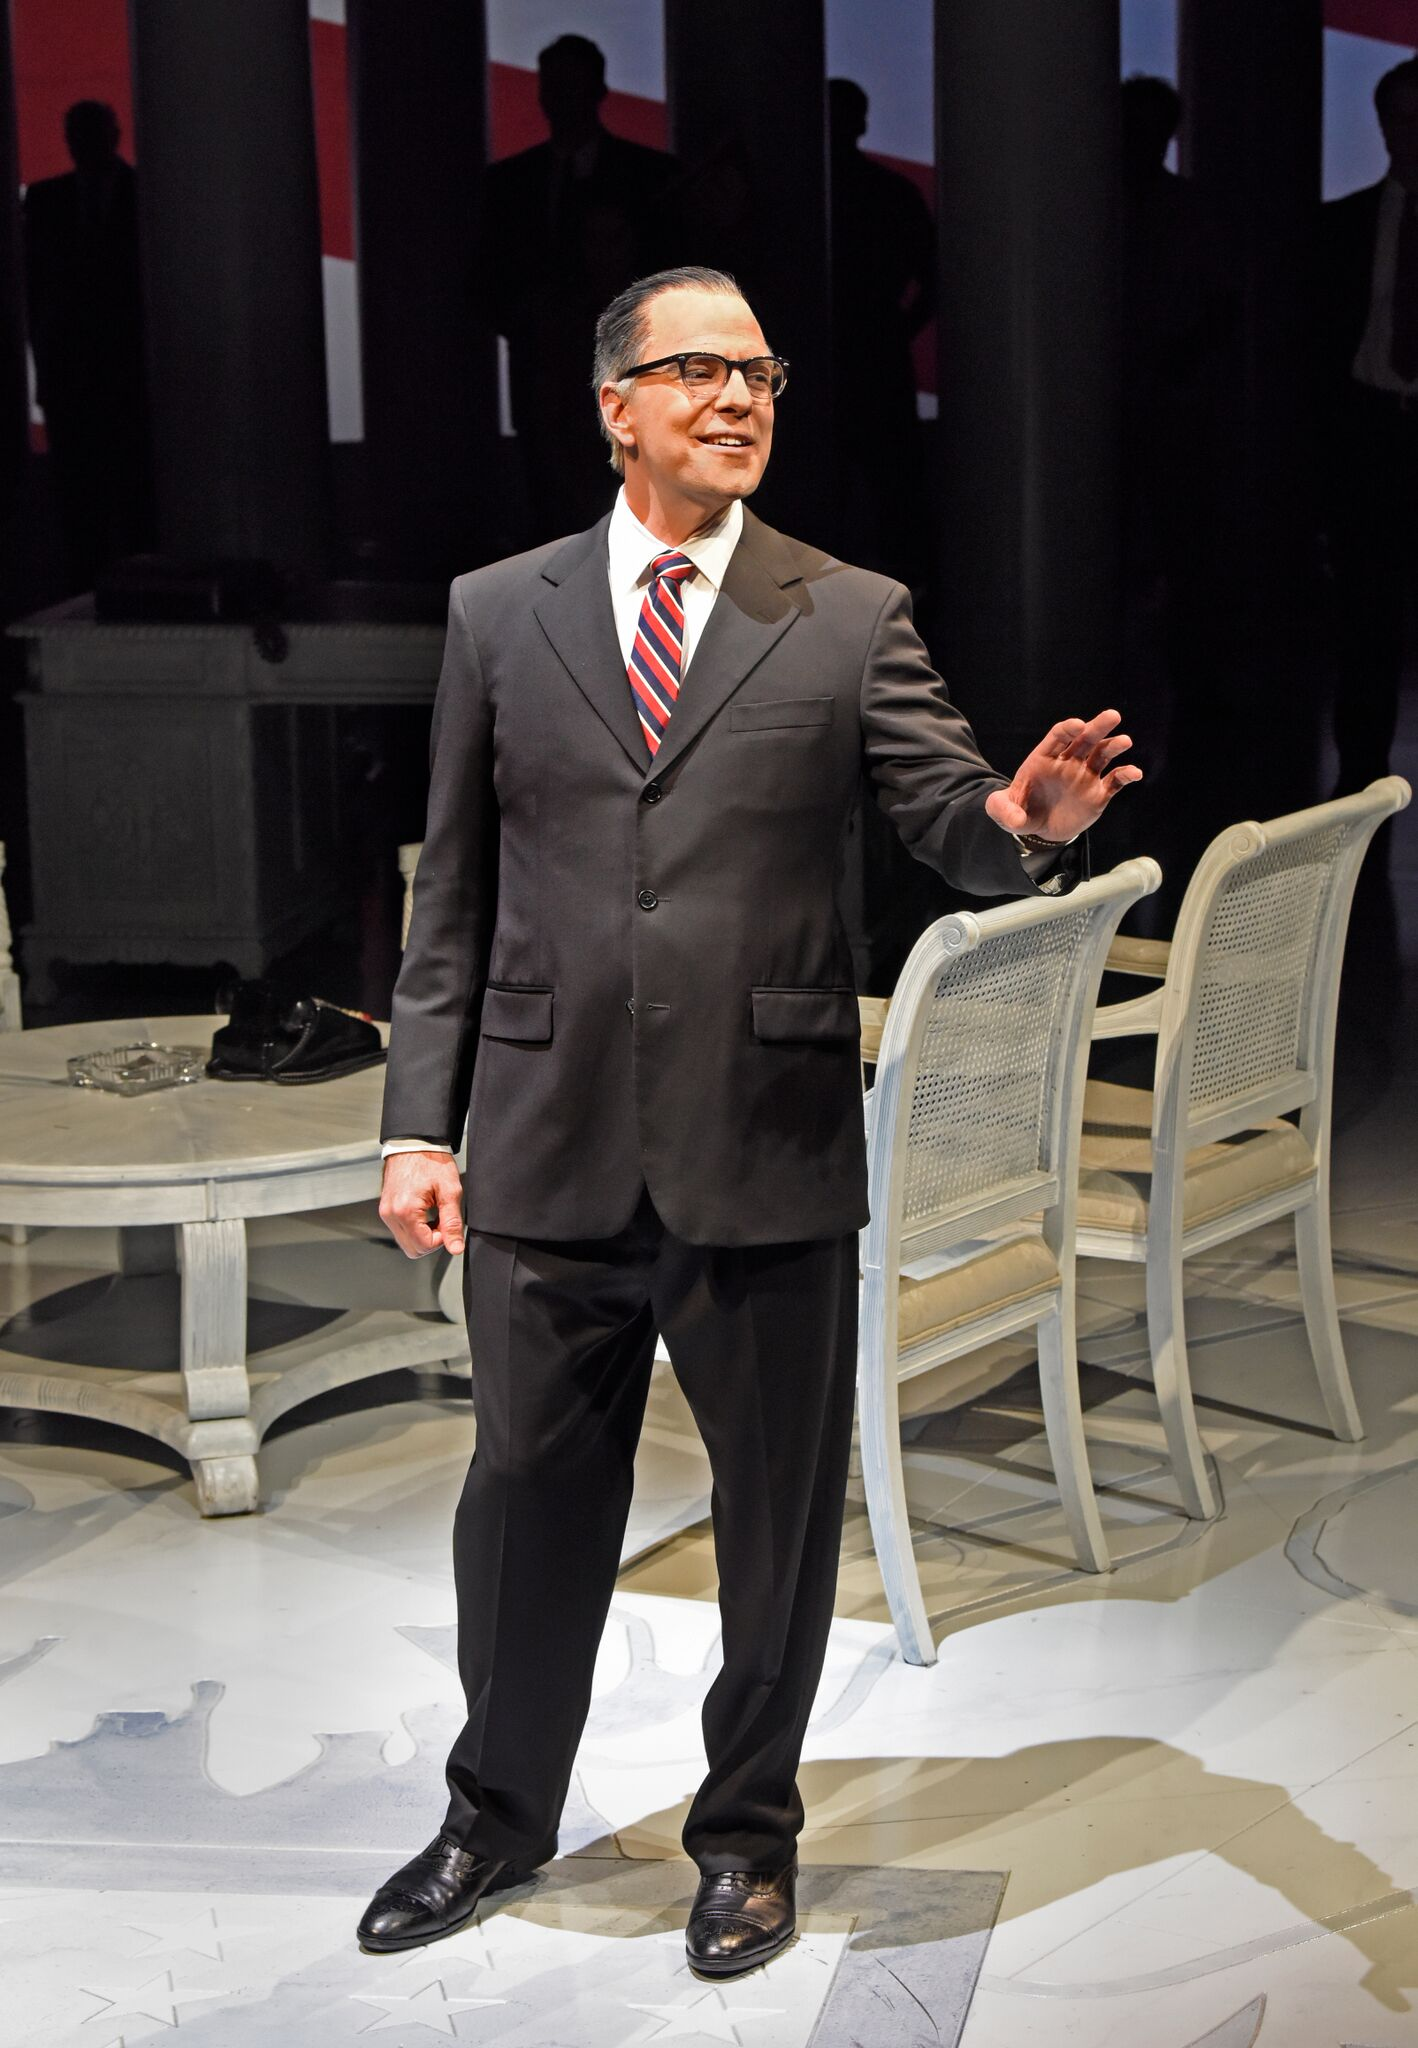 Brandon Potter as LBJ in The Great Society - Photo by Karen Almond_preview